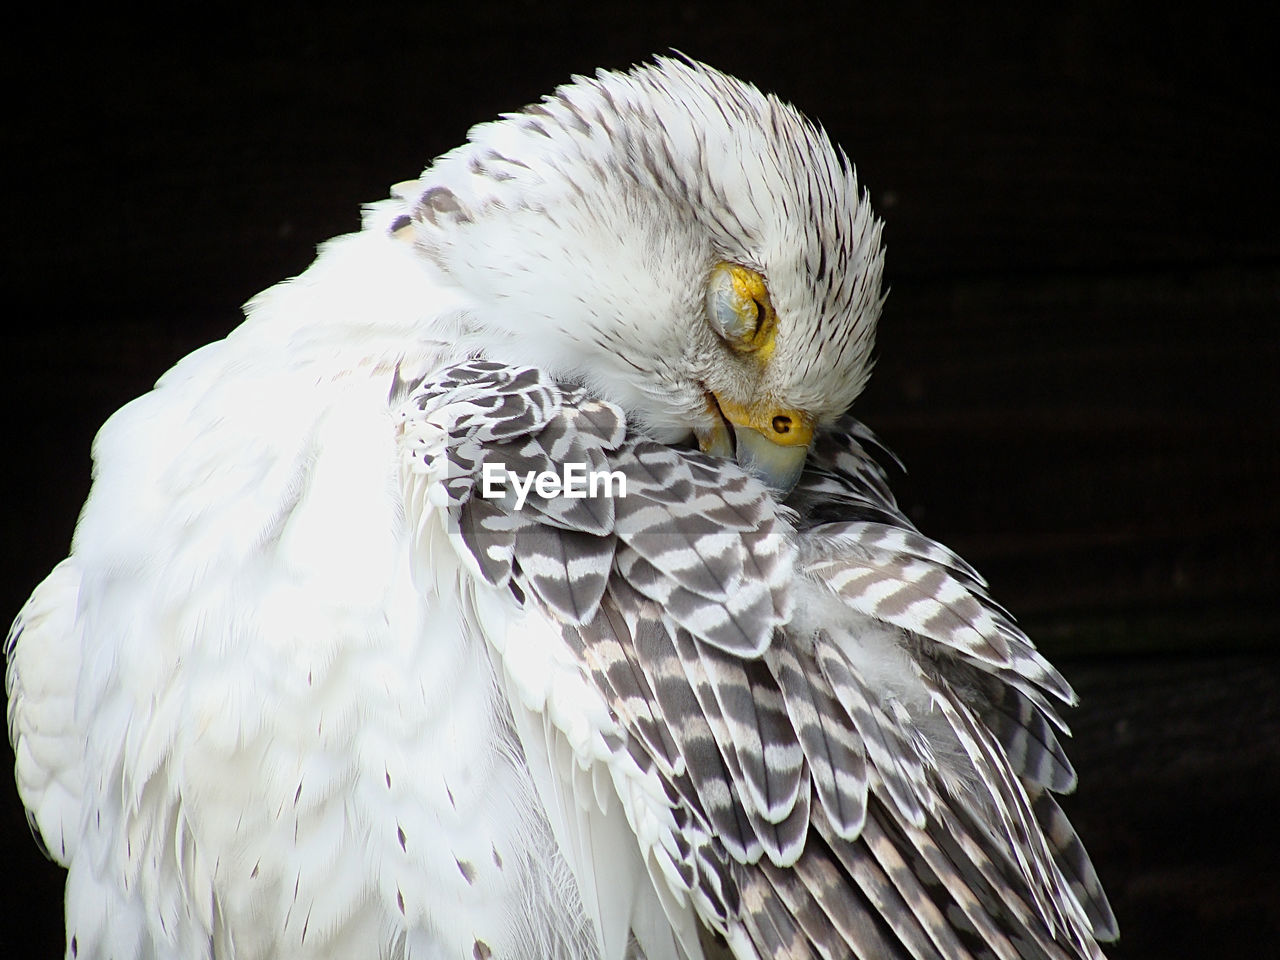 bird, animal themes, animal, vertebrate, one animal, animal wildlife, bird of prey, animals in the wild, close-up, focus on foreground, white color, no people, eagle, day, beak, black background, feather, animal body part, looking, nature, eagle - bird, animal head, yellow eyes, falcon - bird, animal eye